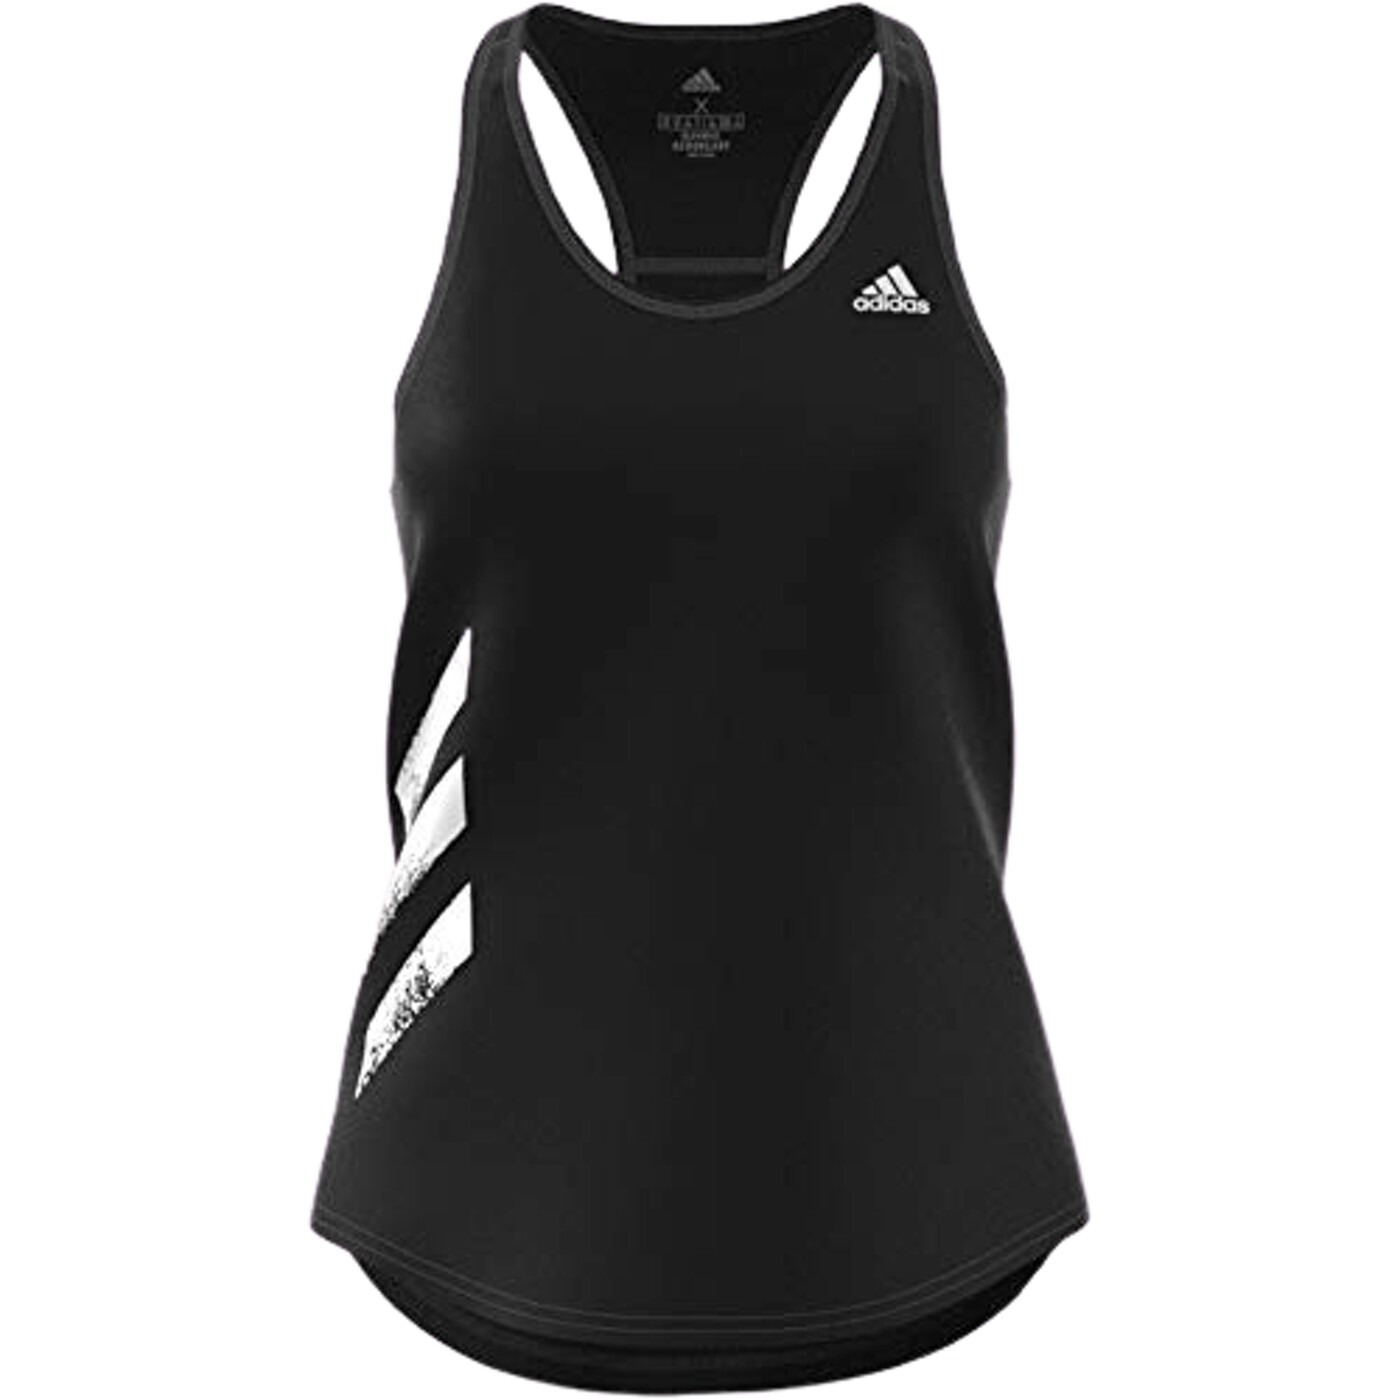 ADIDAS OWN THE RUN 3-STREIFEN PB TANKTOP - Damen